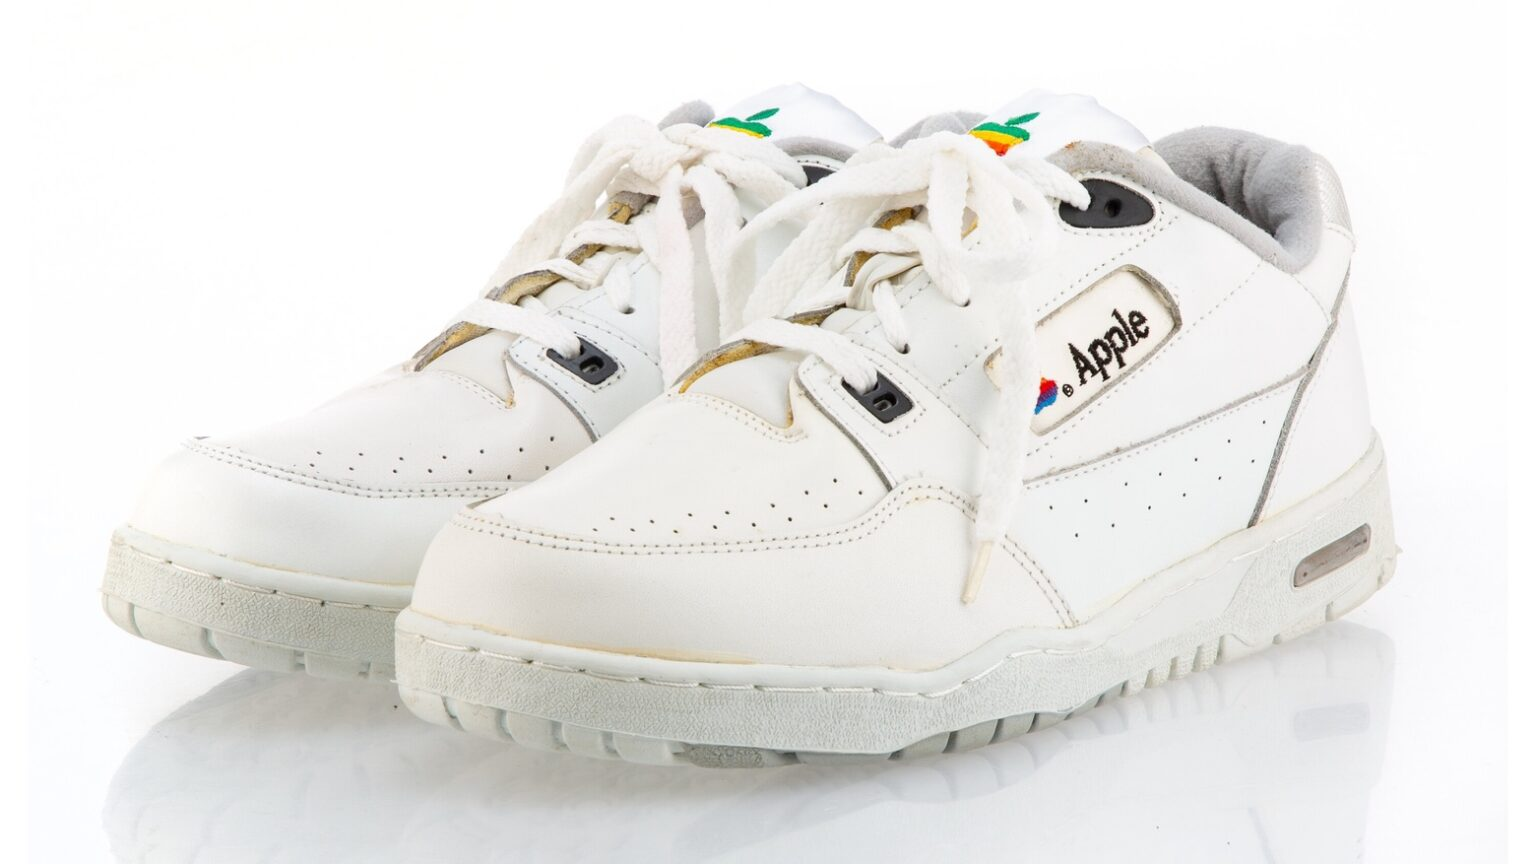 These ultra-rare Apple Computer Sneakers might auction for big bucks